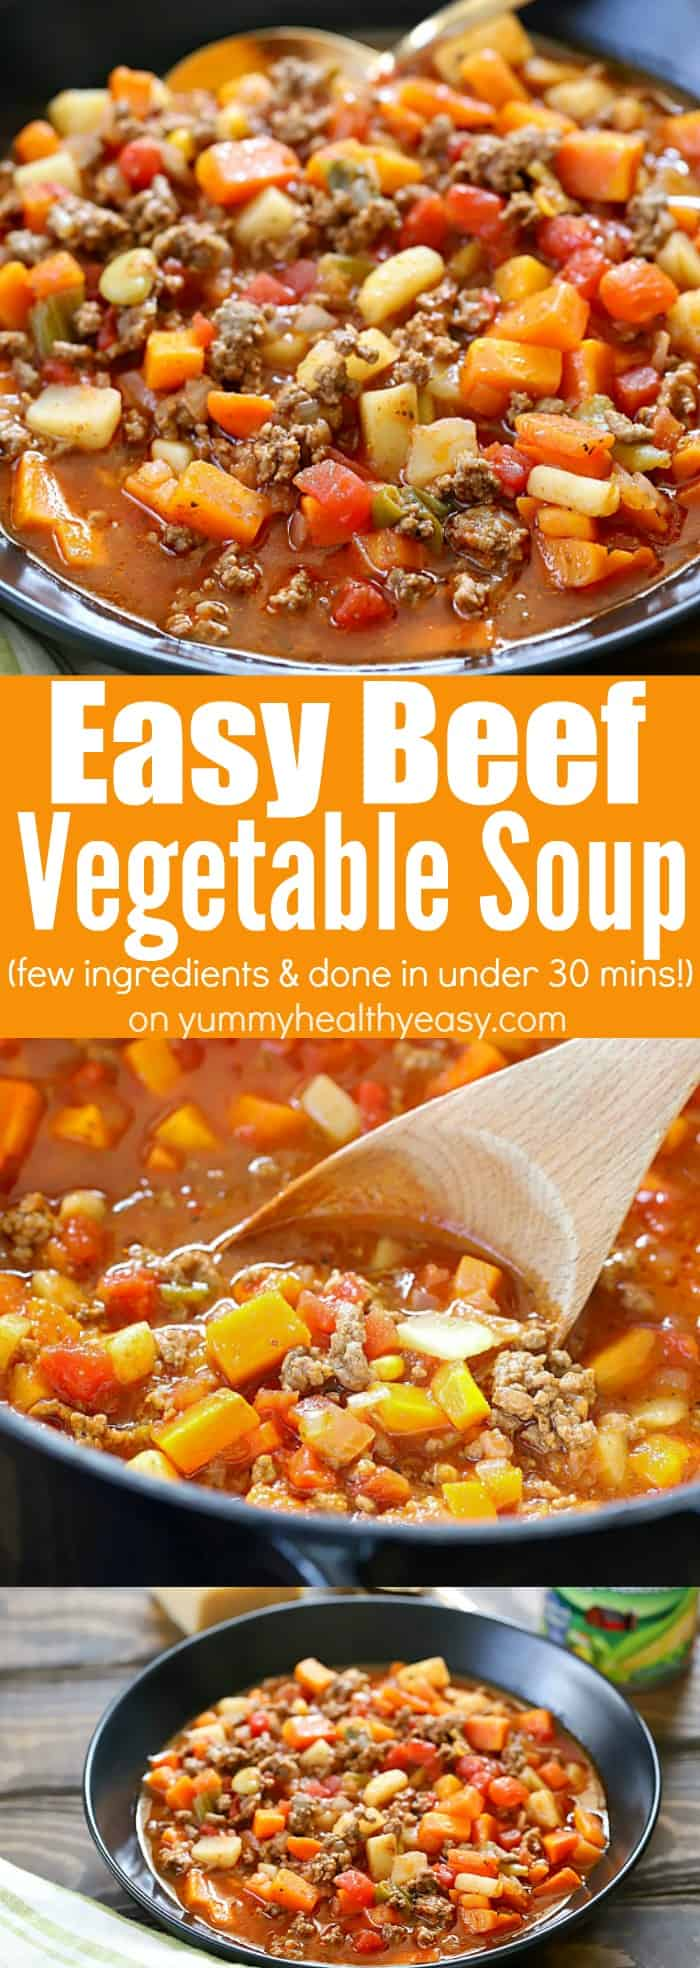 You will LOVE this easy dinner recipe: Easy Vegetable Beef Soup! It has very few ingredients (you probably have most on hand right now) and is done under 30 minutes! Plus it tastes incredible! #sponsored #soup #easyrecipe #dinner #dinnertime #easydinnerrecipe #yummyhealthyeasy #healthyrecipe #delicious #easysoup #healthy #yummy #30minutemeal #stovetopdinner #quick #easy #healthydinner via @jennikolaus